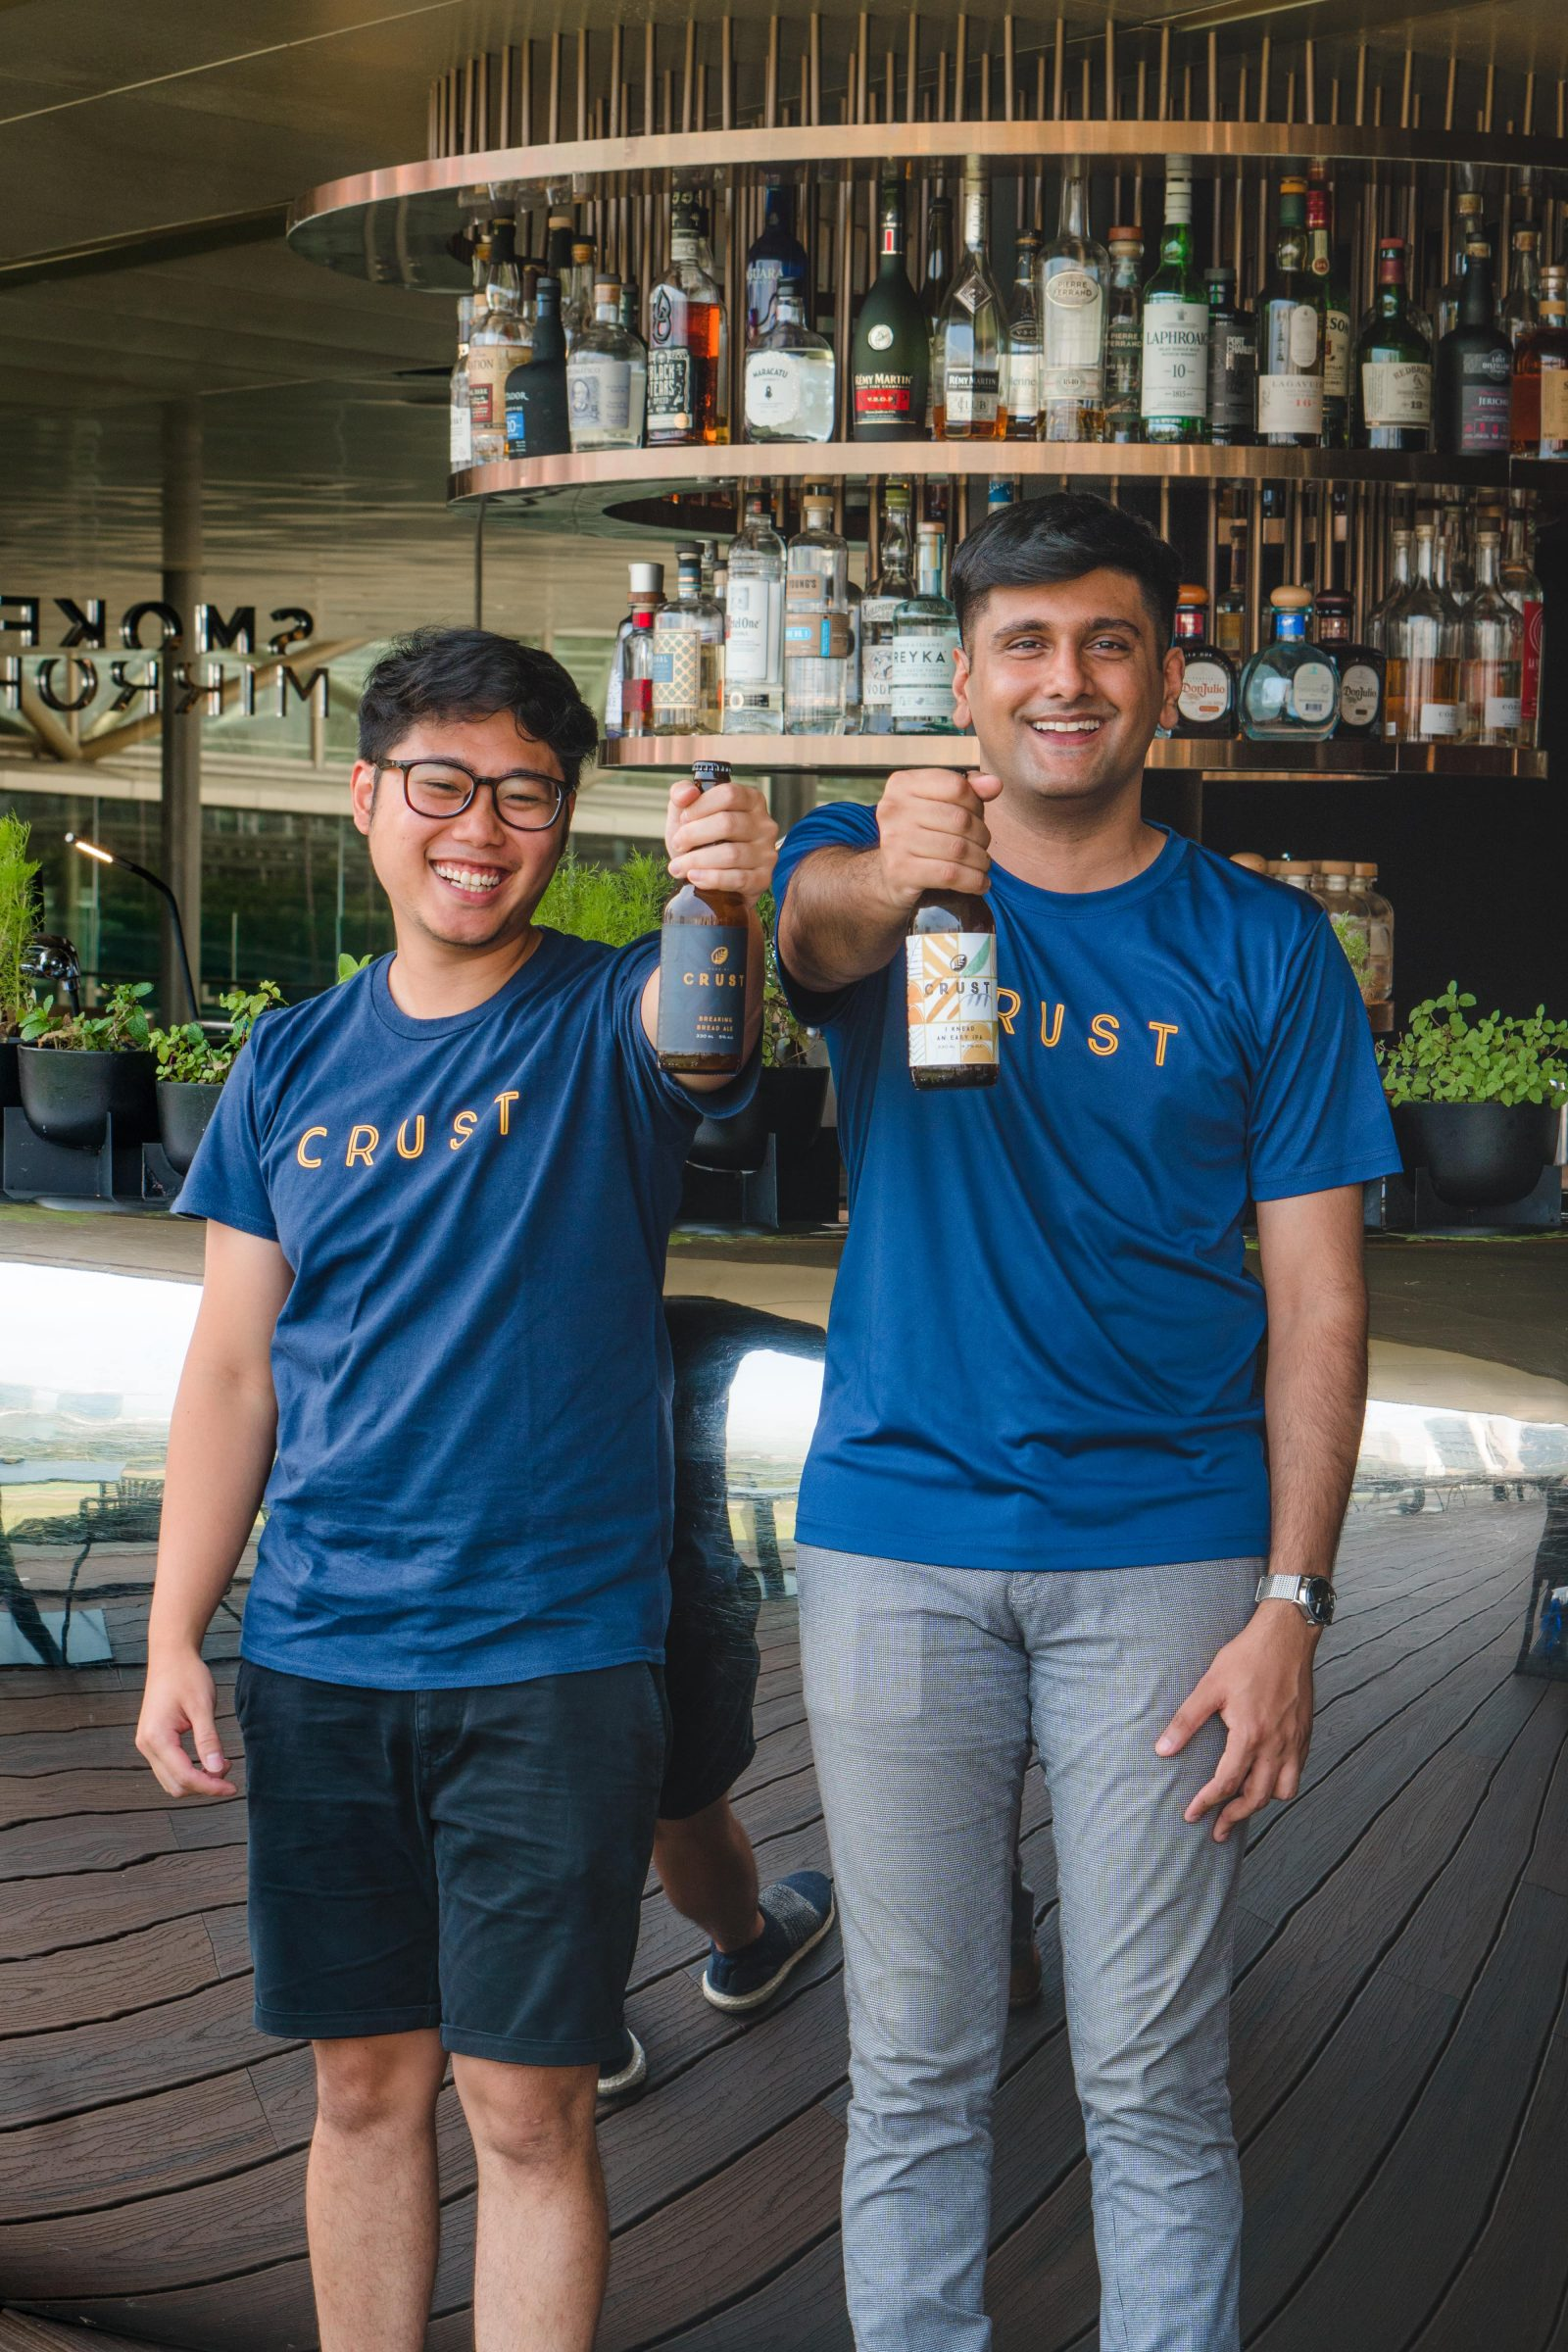 Crust CEO Ben Phua and Founder Travin Singh